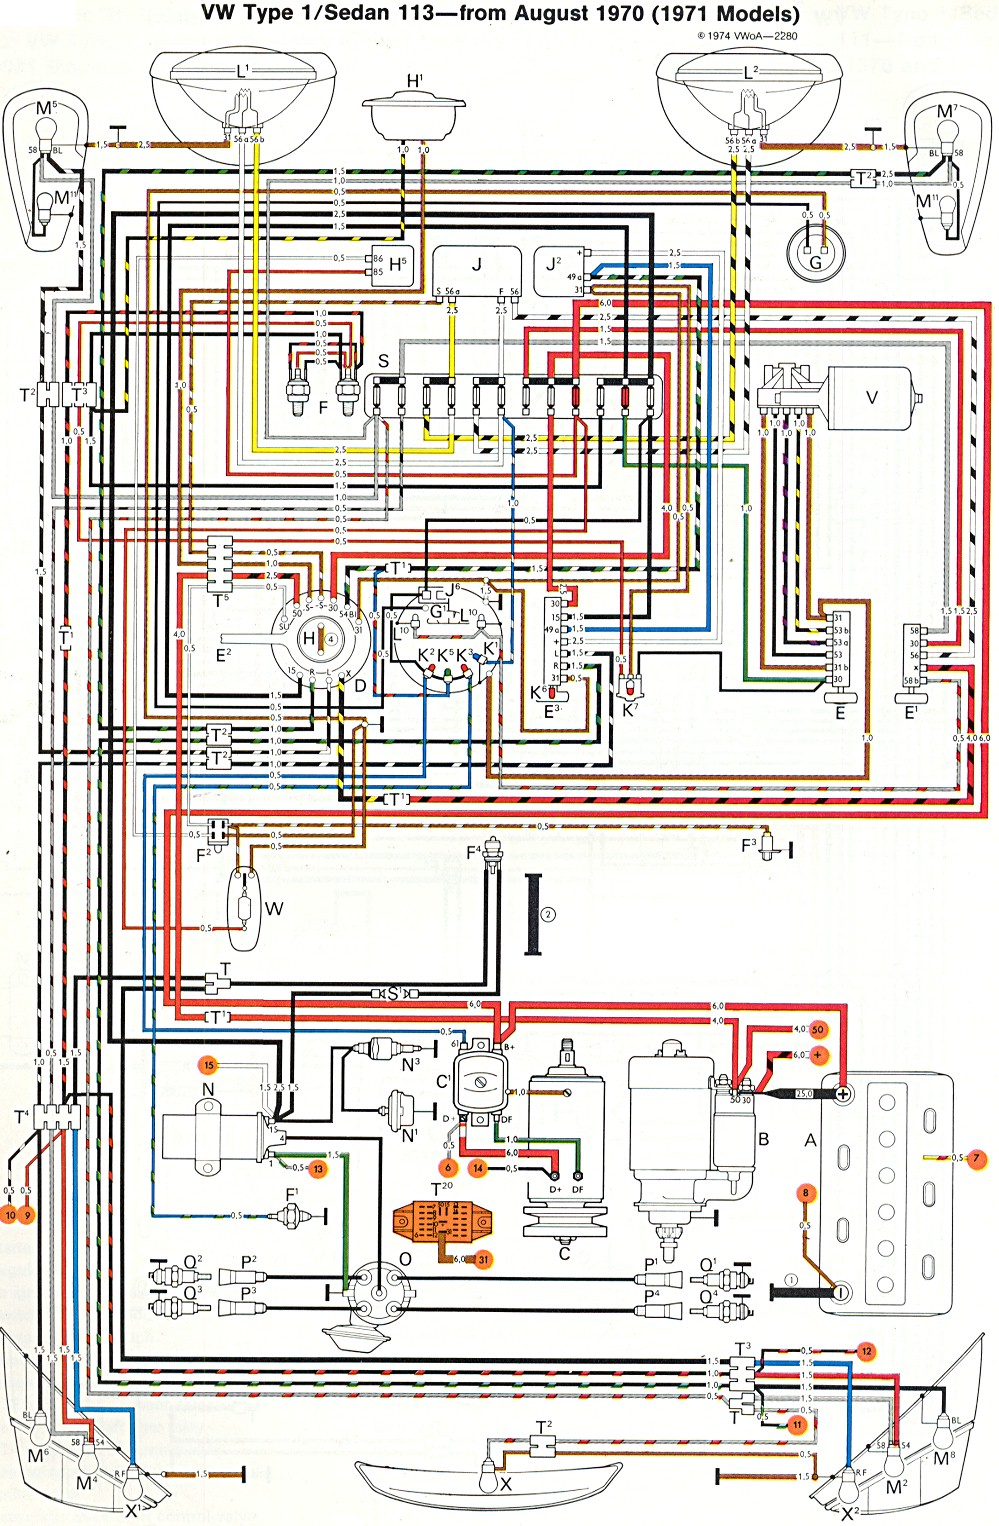 bug_super_71 1971 super beetle wiring diagram thegoldenbug com 1973 vw super beetle wiring harness at creativeand.co